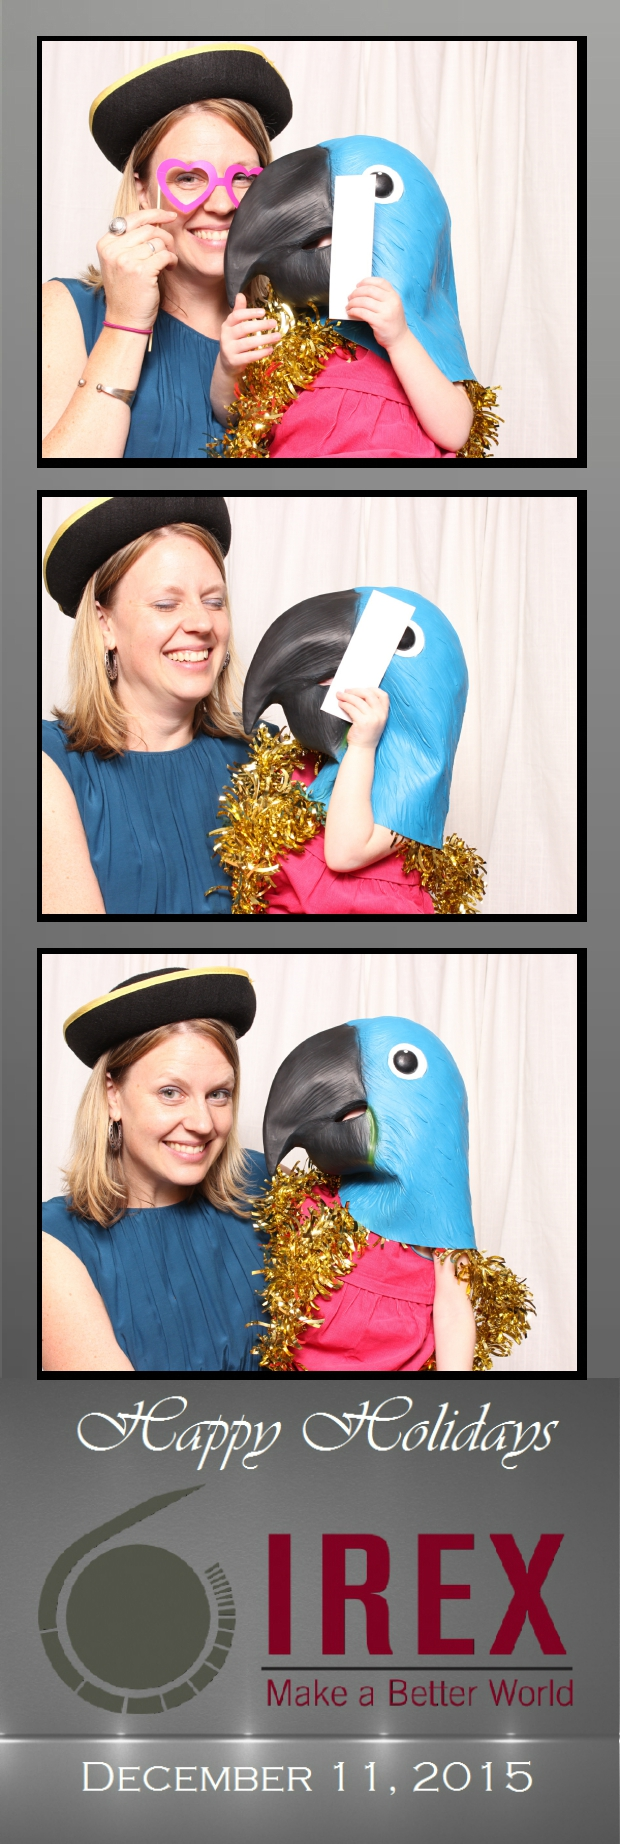 Guest House Events Photo Booth Strips IREX (44).jpg